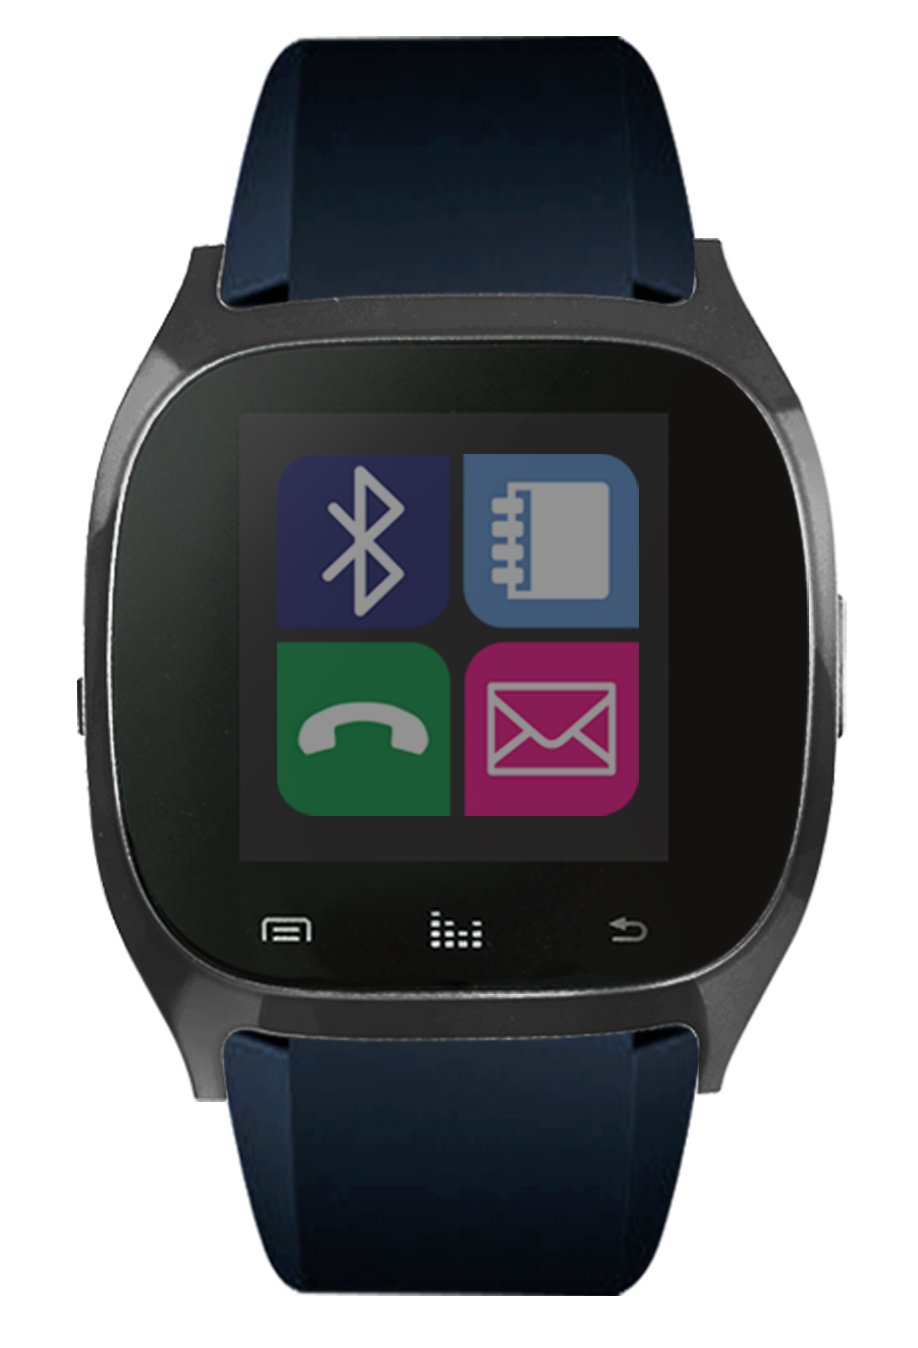 Amazon.com: iTECH Smart Watch Android & IOS Compatible: Cell Phones & Accessories